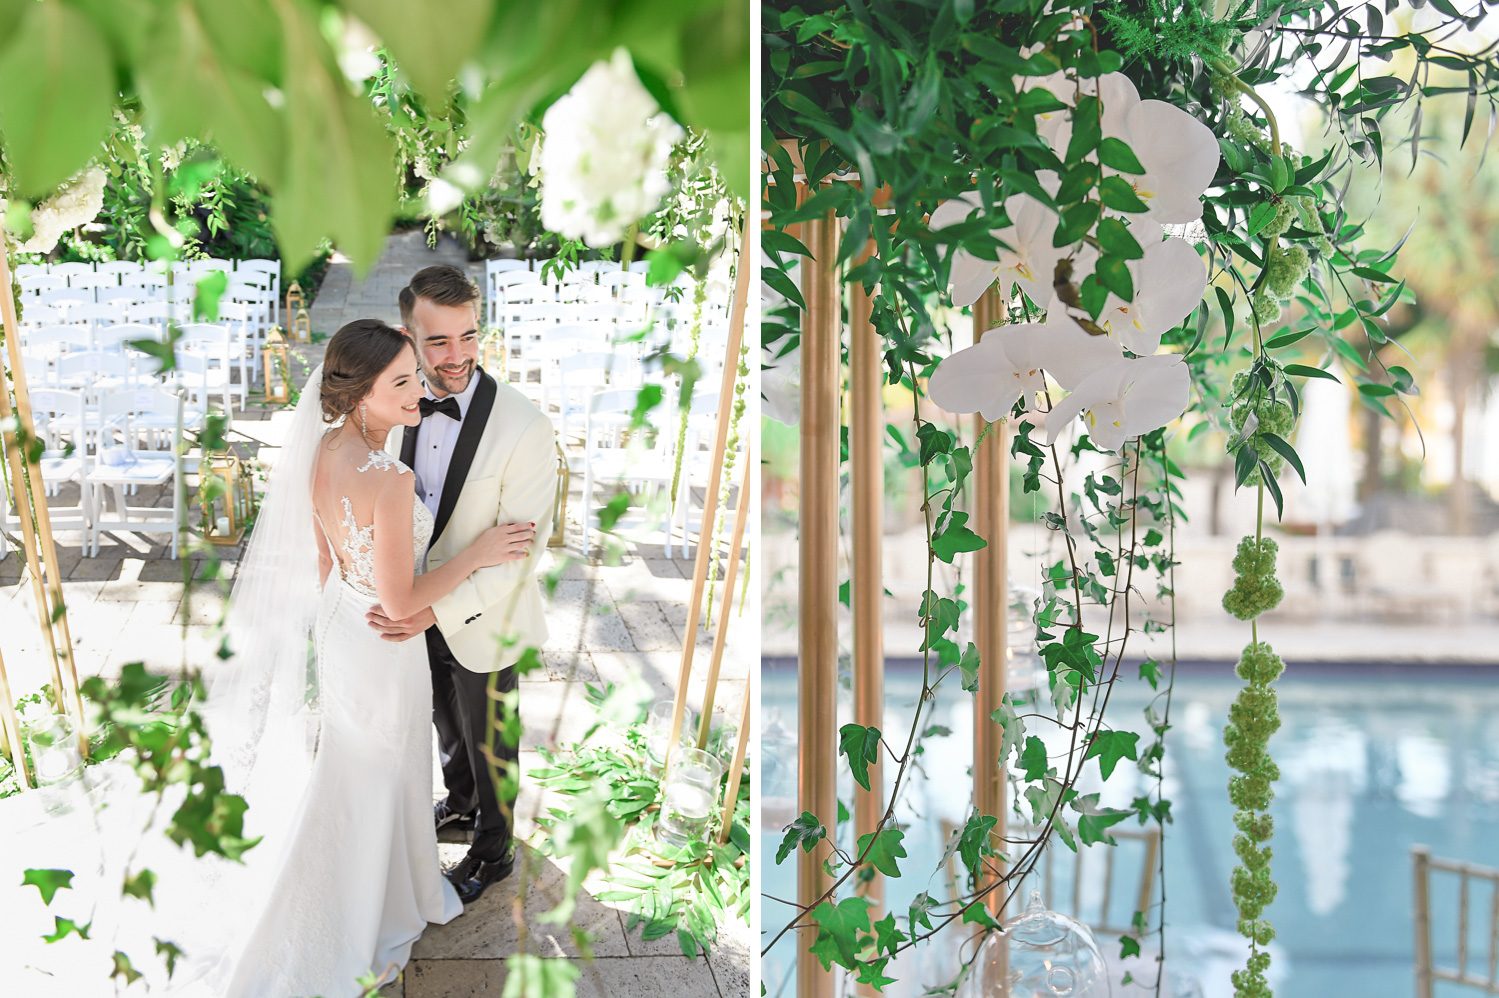 beautiful chuppah at Tropical Garden Wedding at Fisher Island Miami by Domino Arts Photography